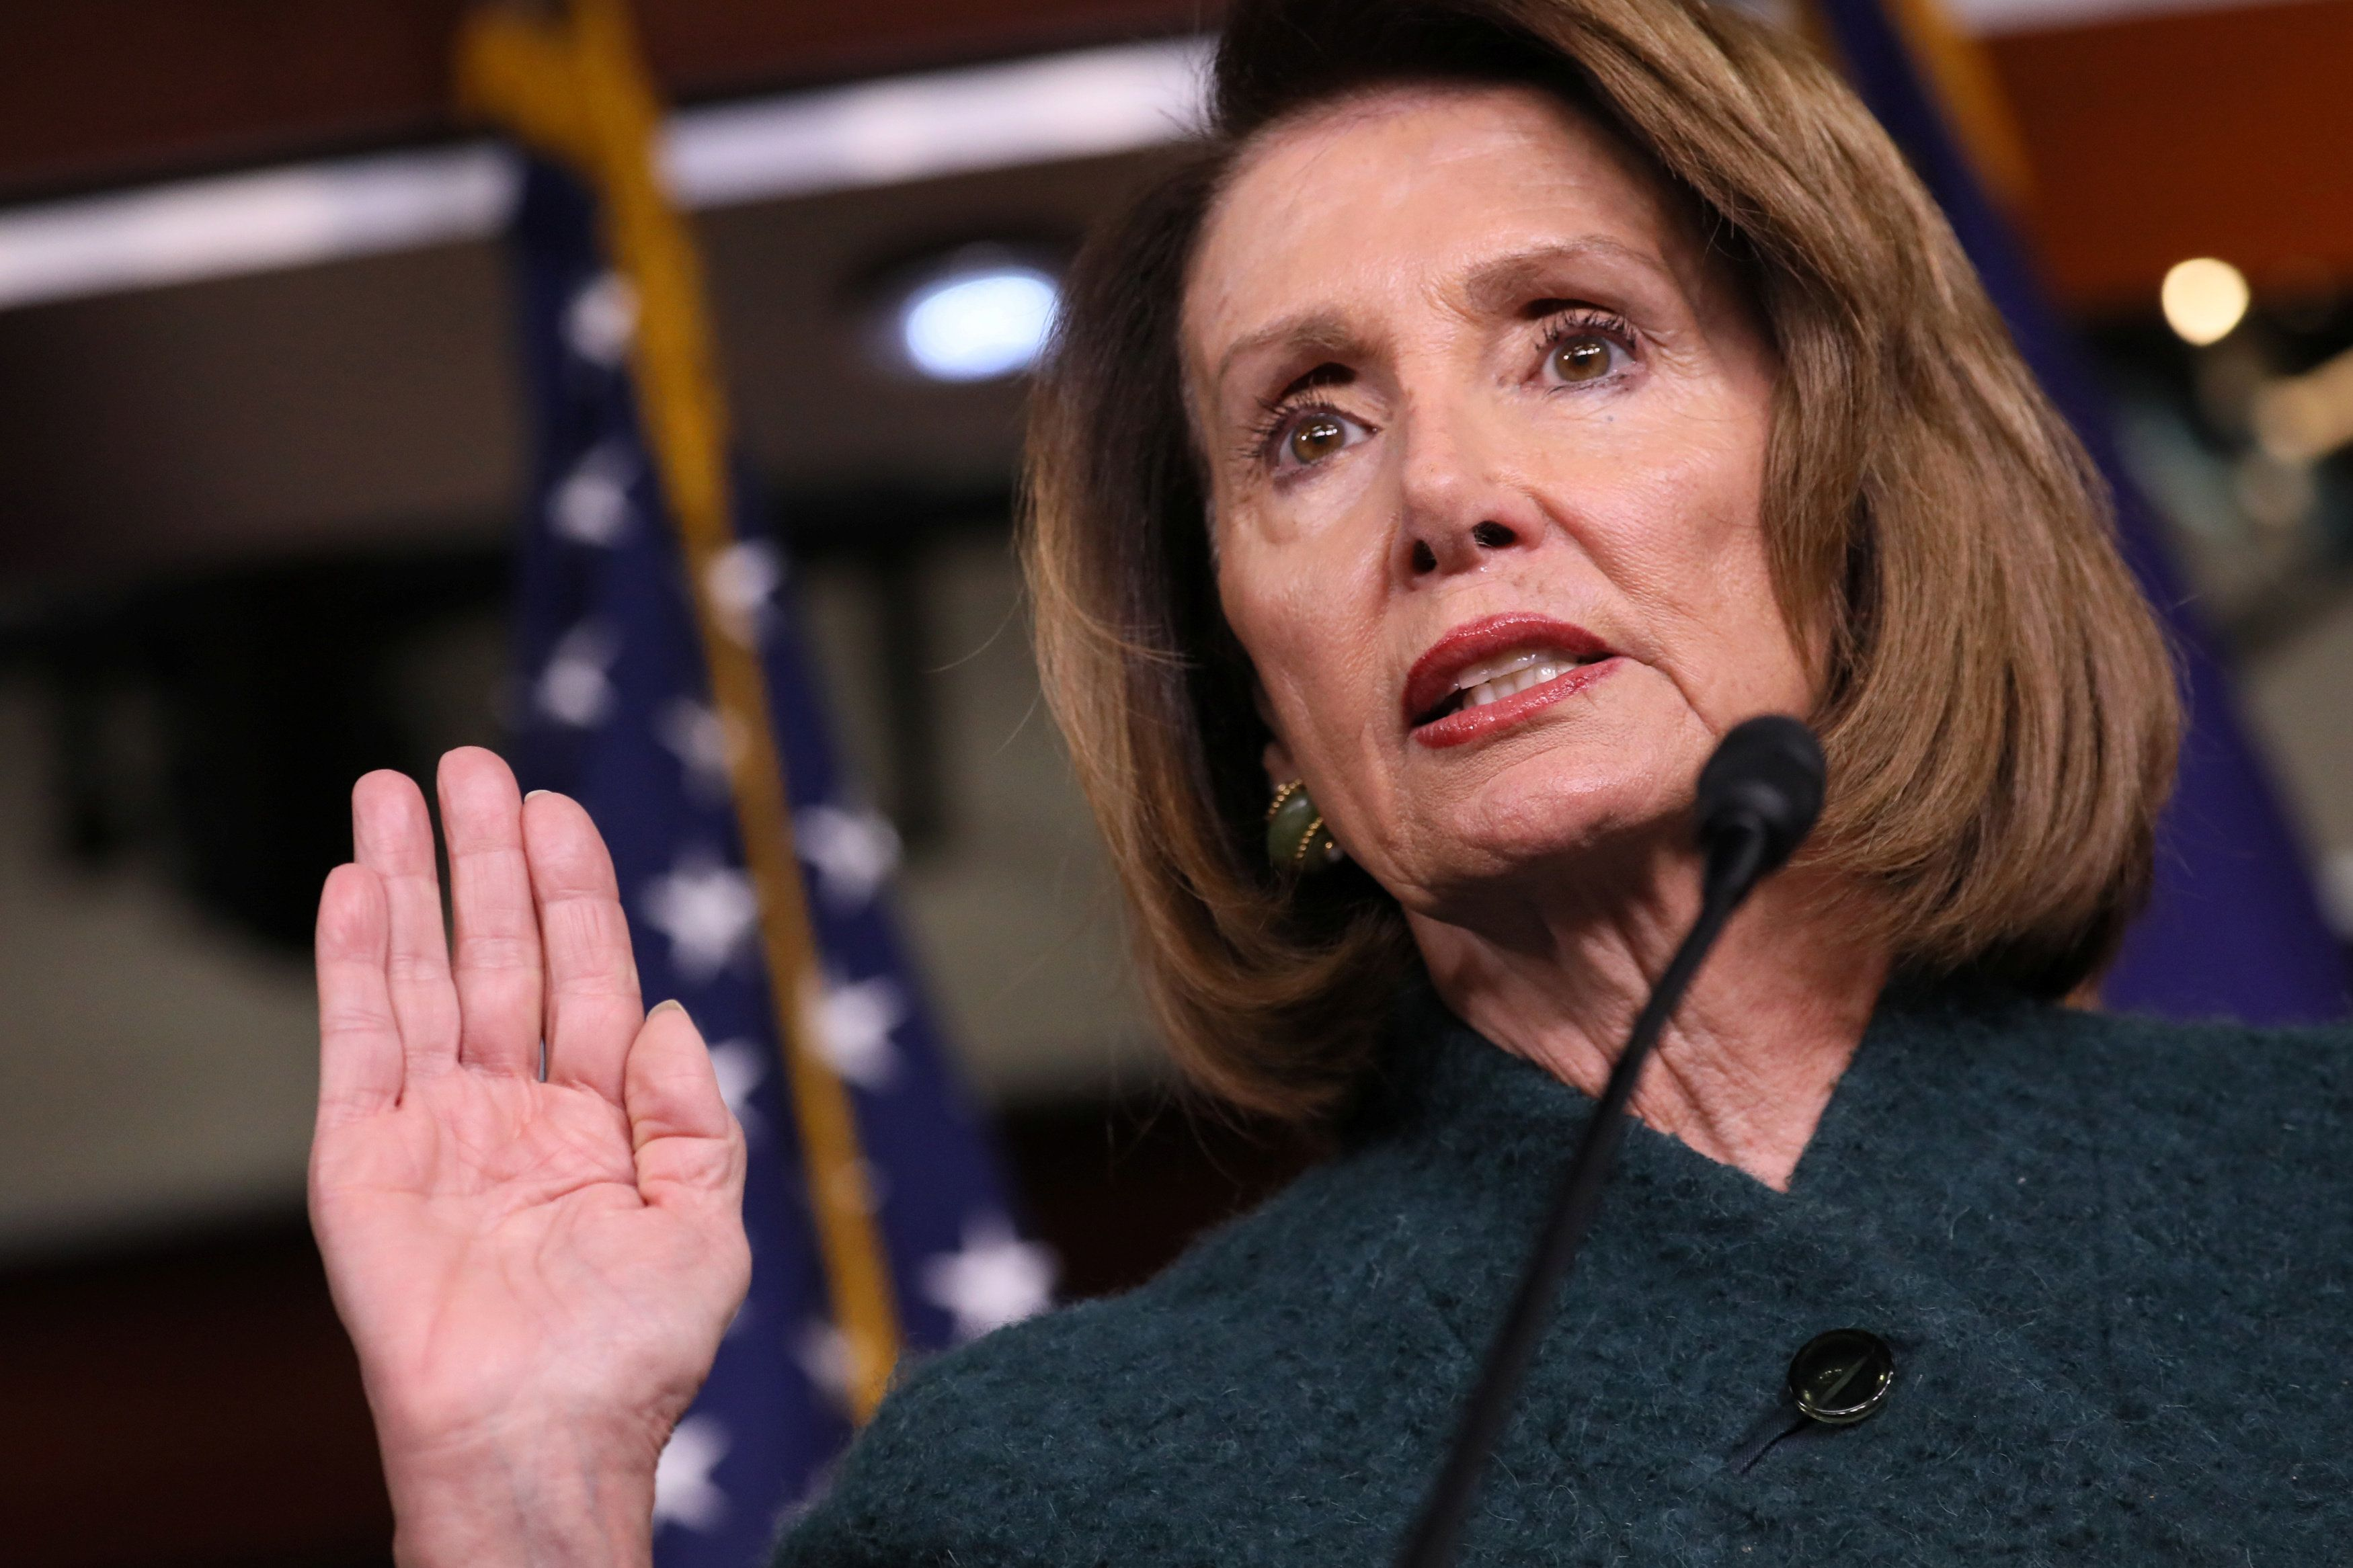 U.S. House Speaker Nancy Pelosi (D-CA) talks about upholding her oath of office in negotiations with President Trump over the federal budget, border security and the partial federal government shutdown during a news conference at the U.S. Capitol in Washington, U.S. January 10, 2019.  REUTERS/Jonathan Ernst